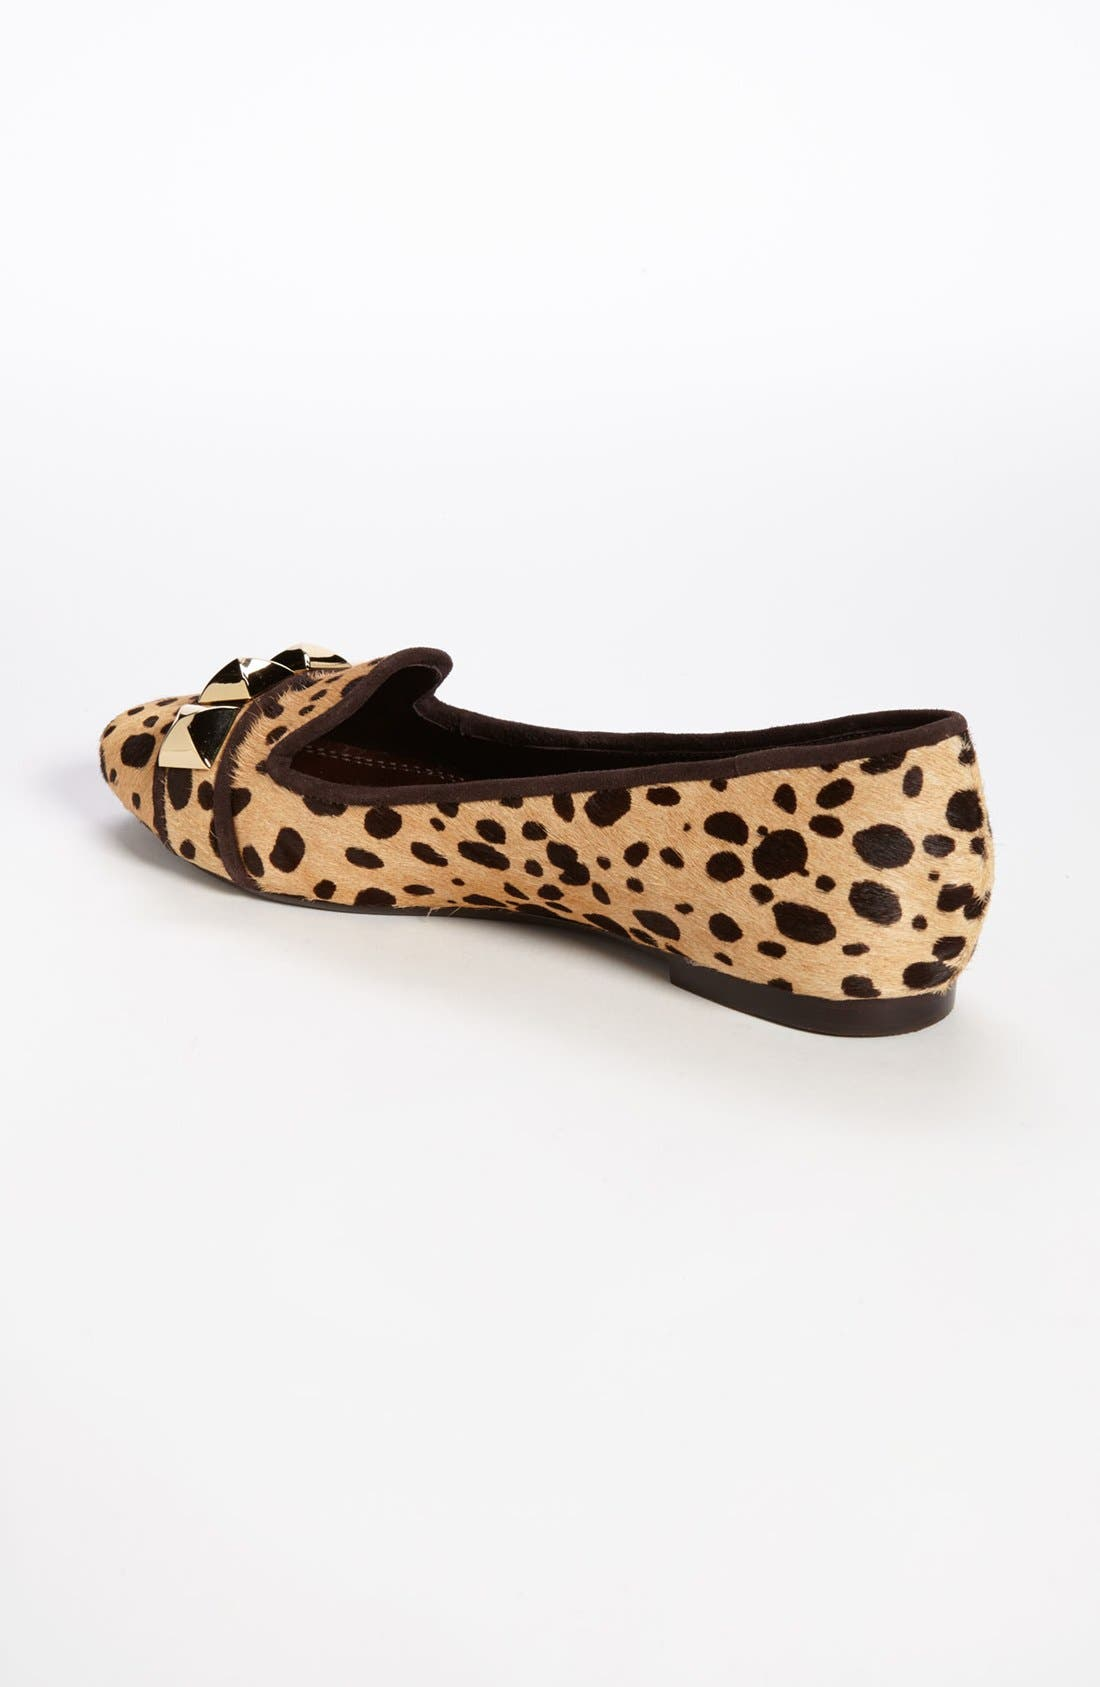 'Asher' Loafer Flat,                             Alternate thumbnail 4, color,                             250